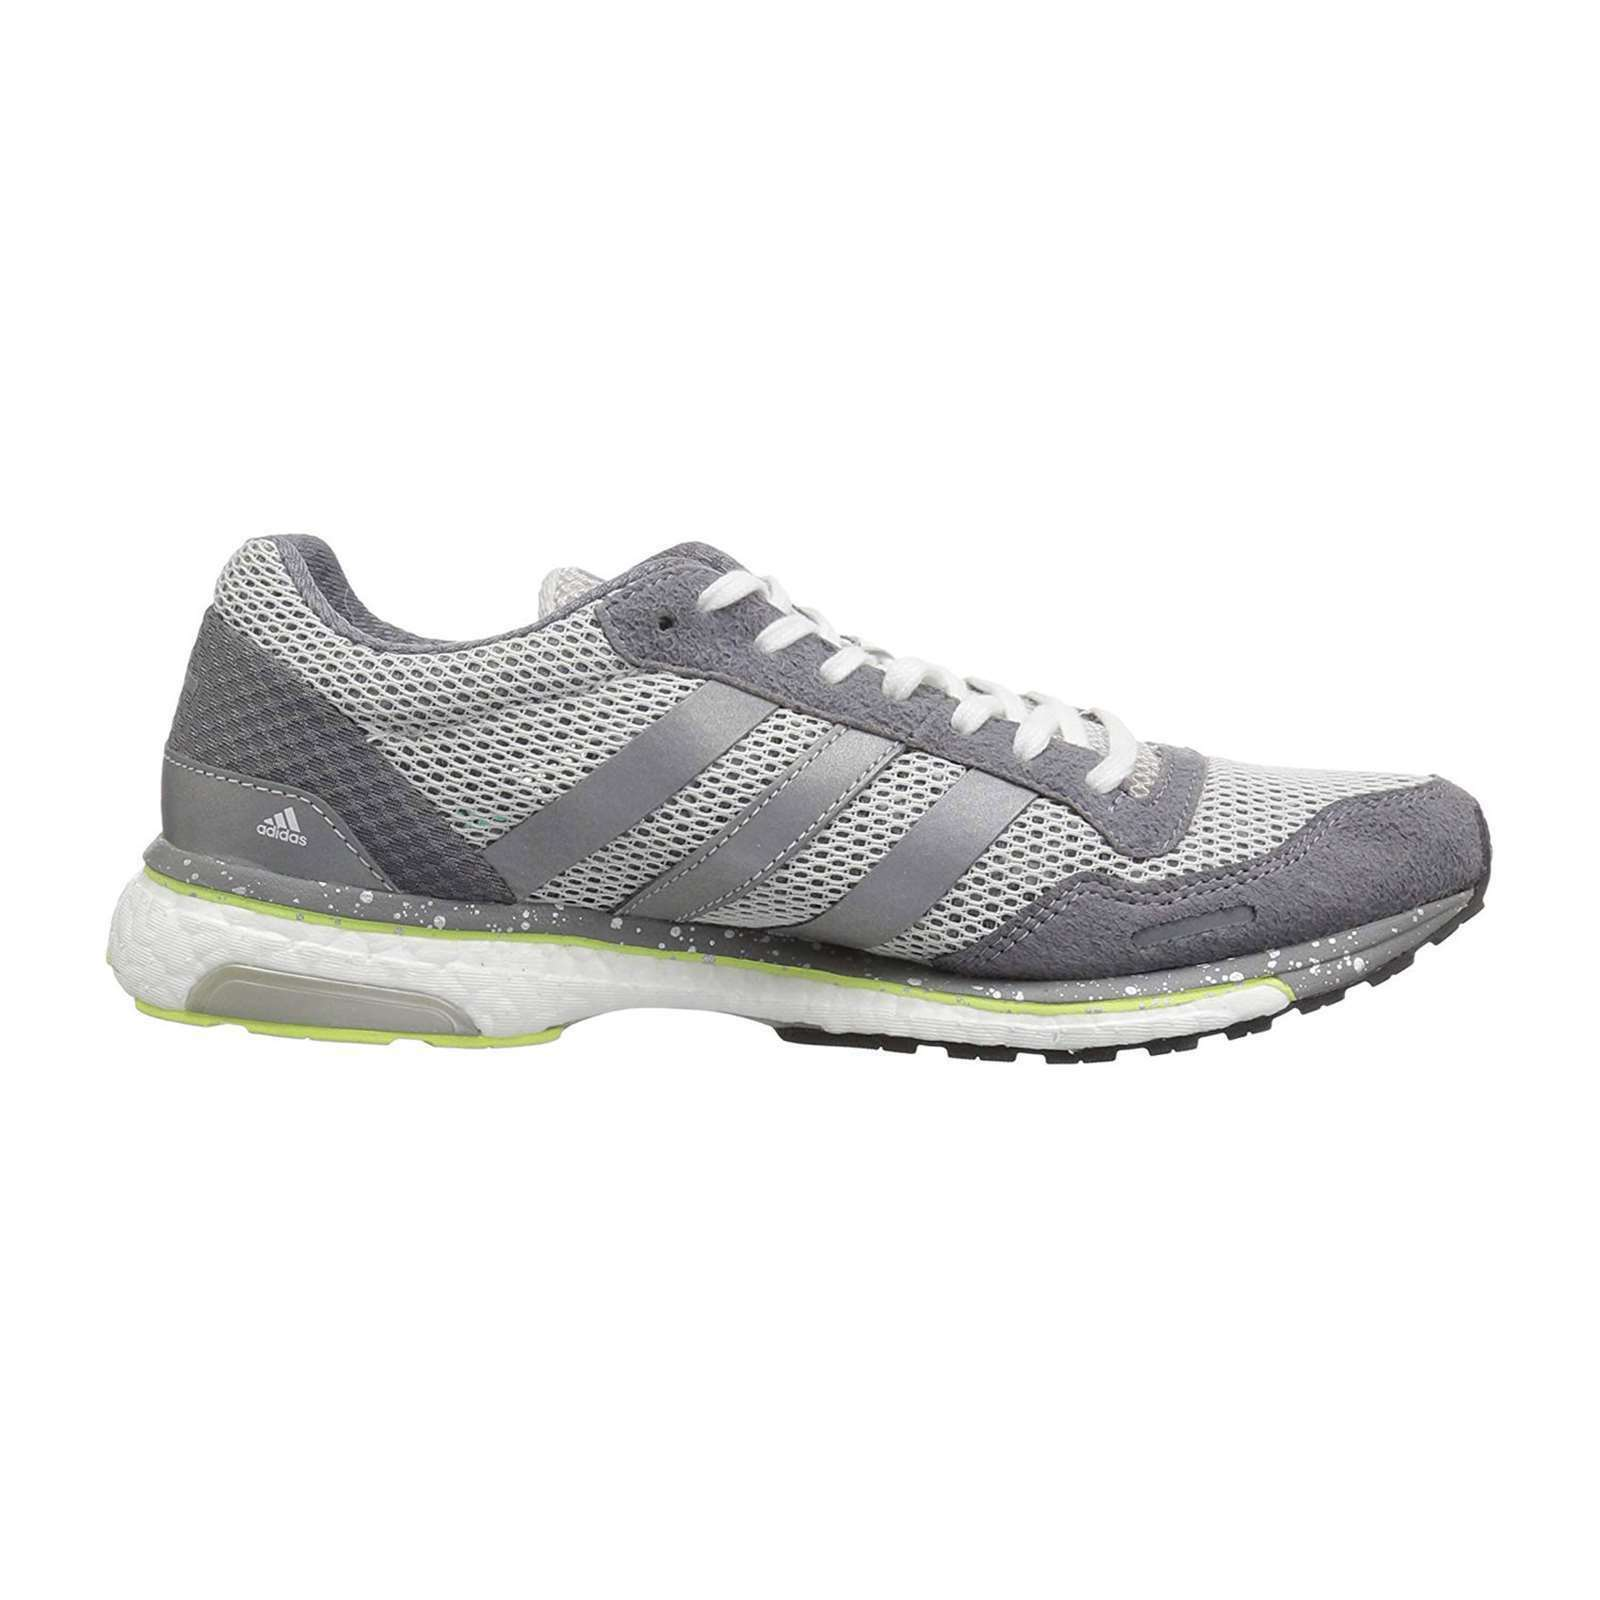 Women Adidas Adizero Adios Grey Running shoes shoes shoes Womens ADIDAS BB6410 NEW 7888c4